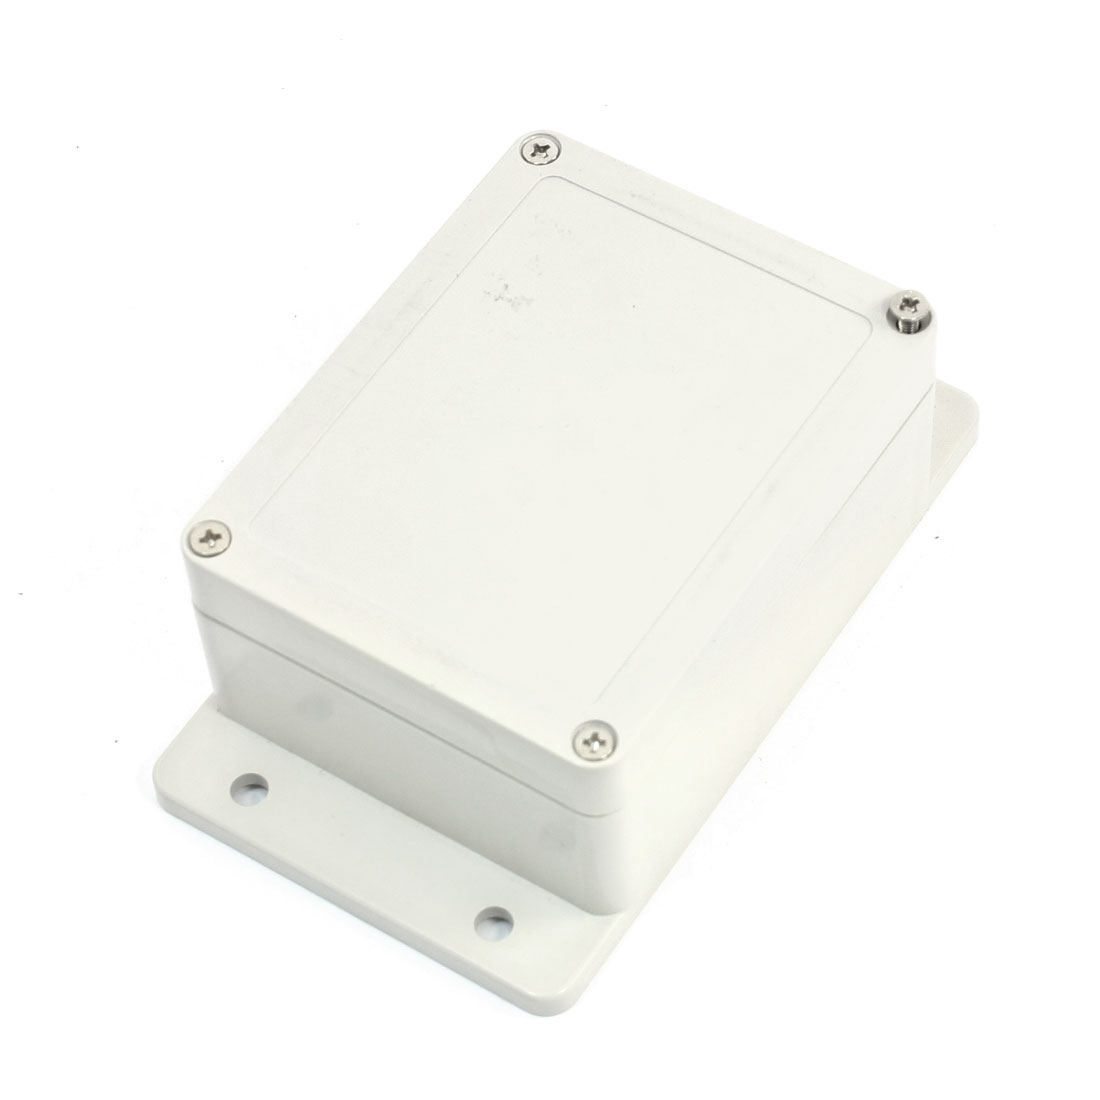 115mm-x-90mm-x-55mm-Waterproof-Plastic-Case-DIY-Junction-Box-Joint-Hinged-Lid